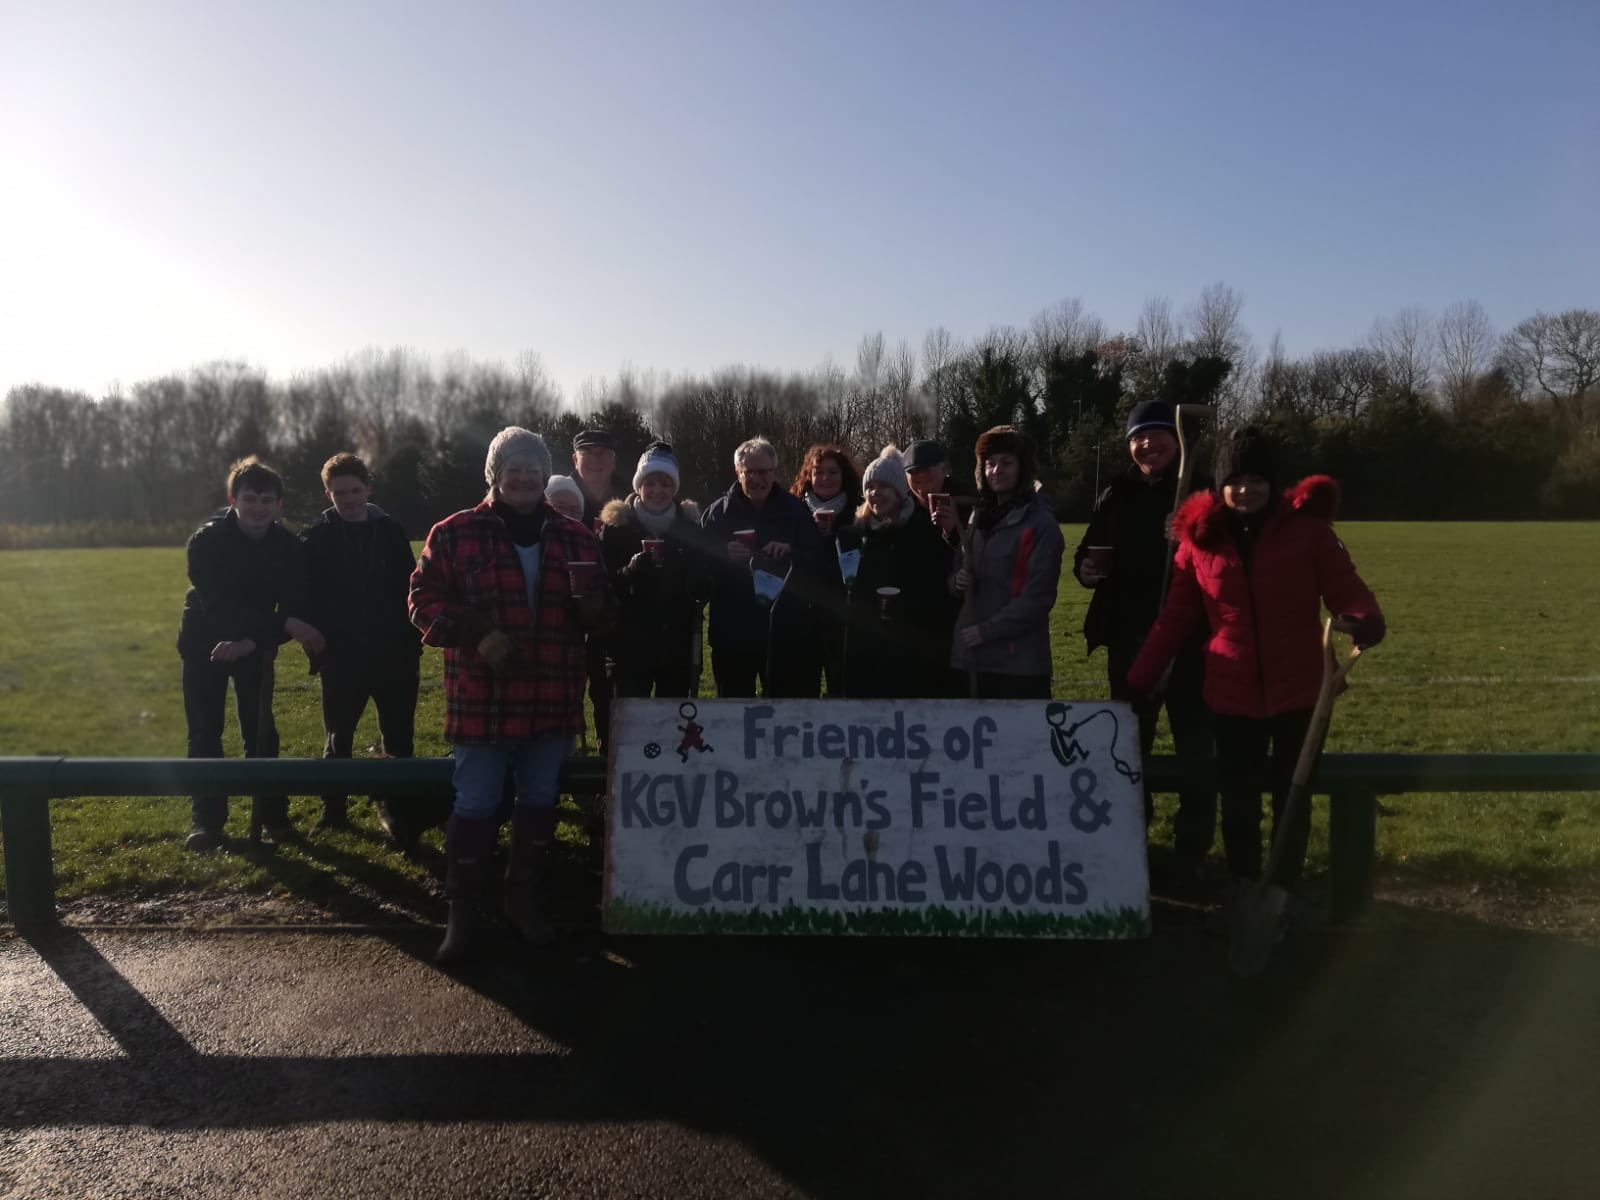 Friends of KGV Browns Field & Carr Lane Woods Annual General Meeting